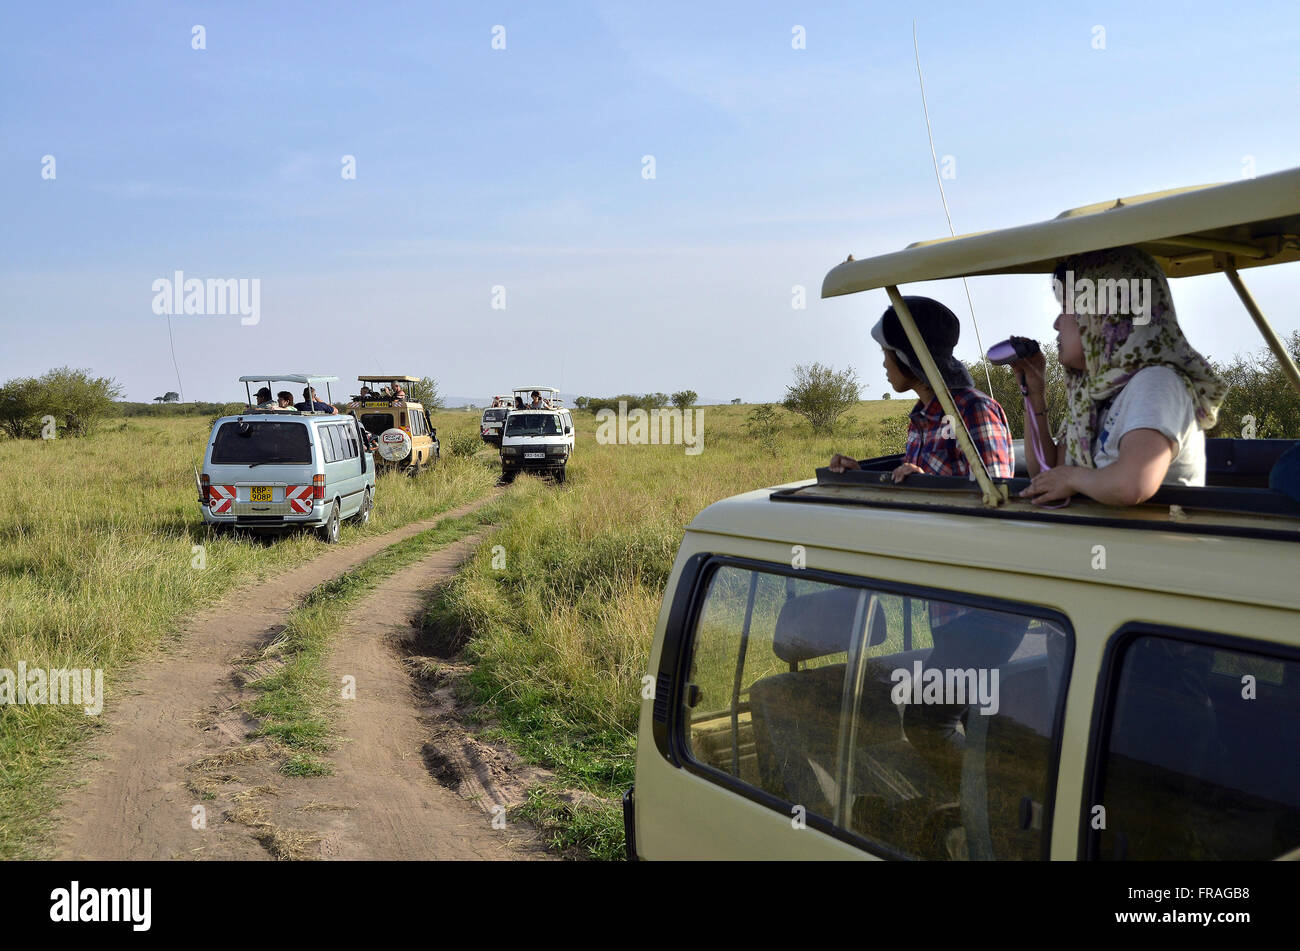 Vans with tourists on safari in the African savannah observation in Maasai Mara National Reserve - Stock Image